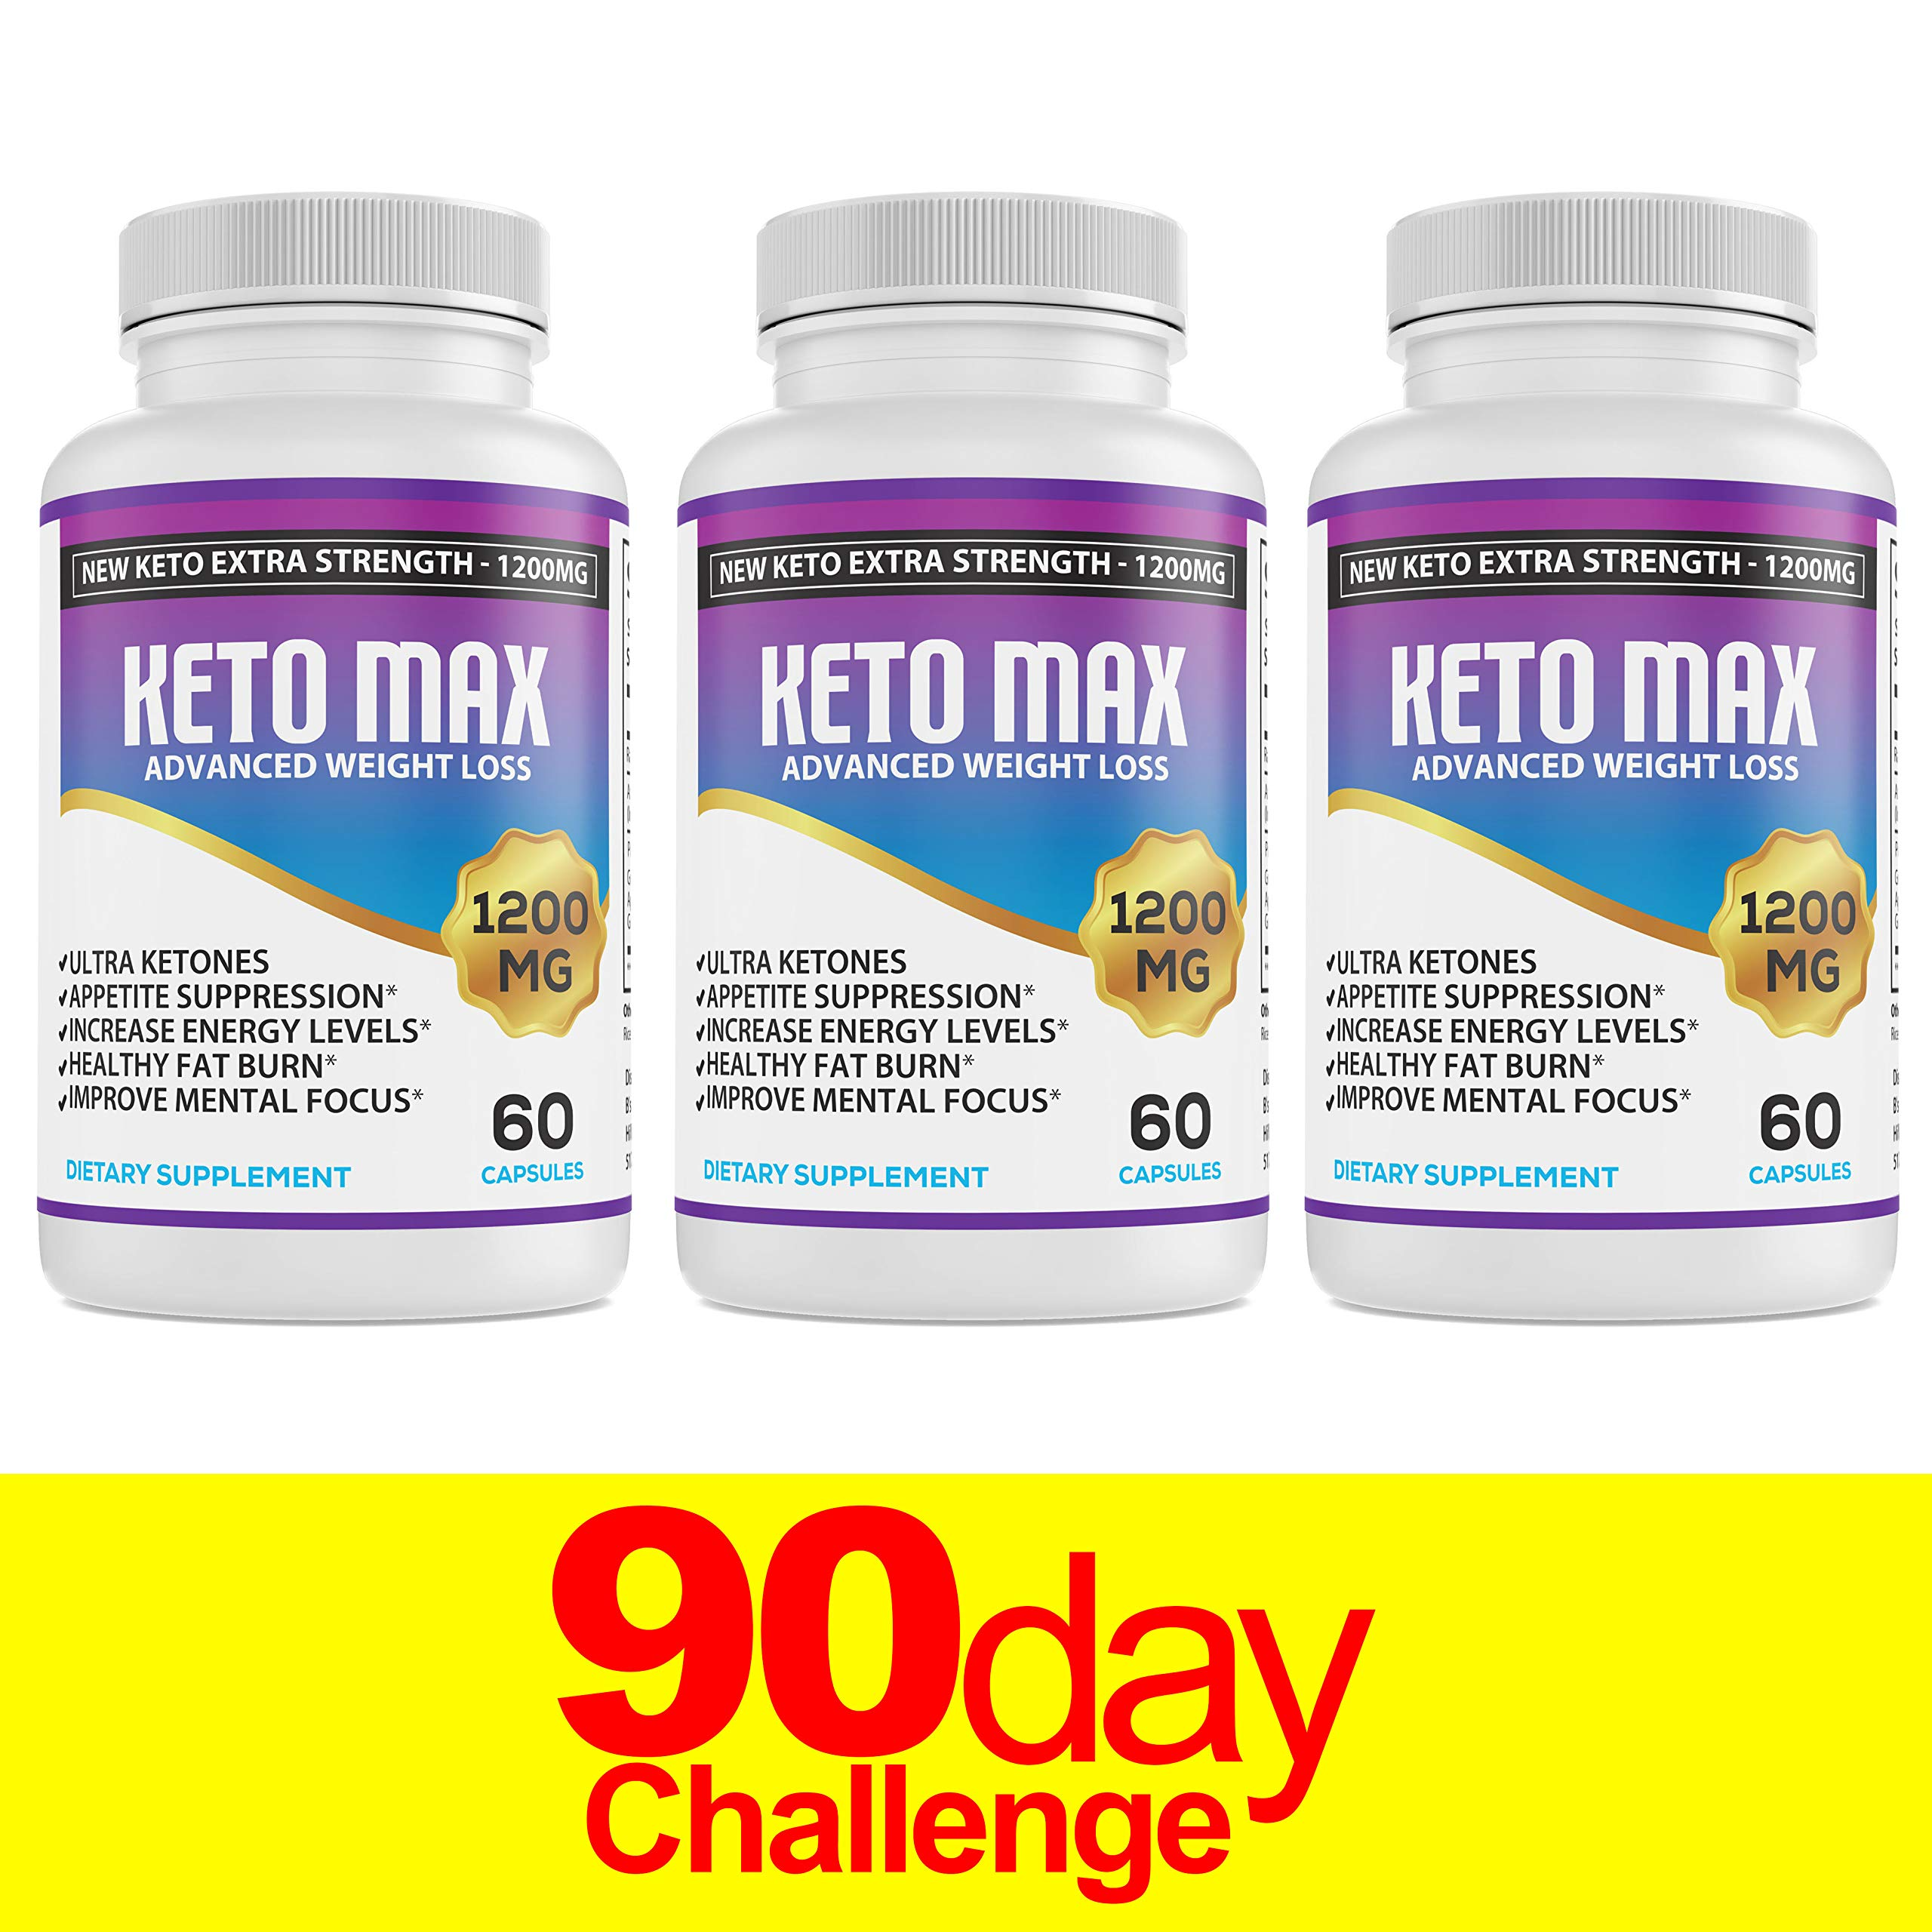 Keto Diet Pills - (1200mg 90 Day Supply) Weight Loss Fat Burner for Women & Men, Perfect Exogenous Ketones Supplement Burners by Keto Extra Strength 1200